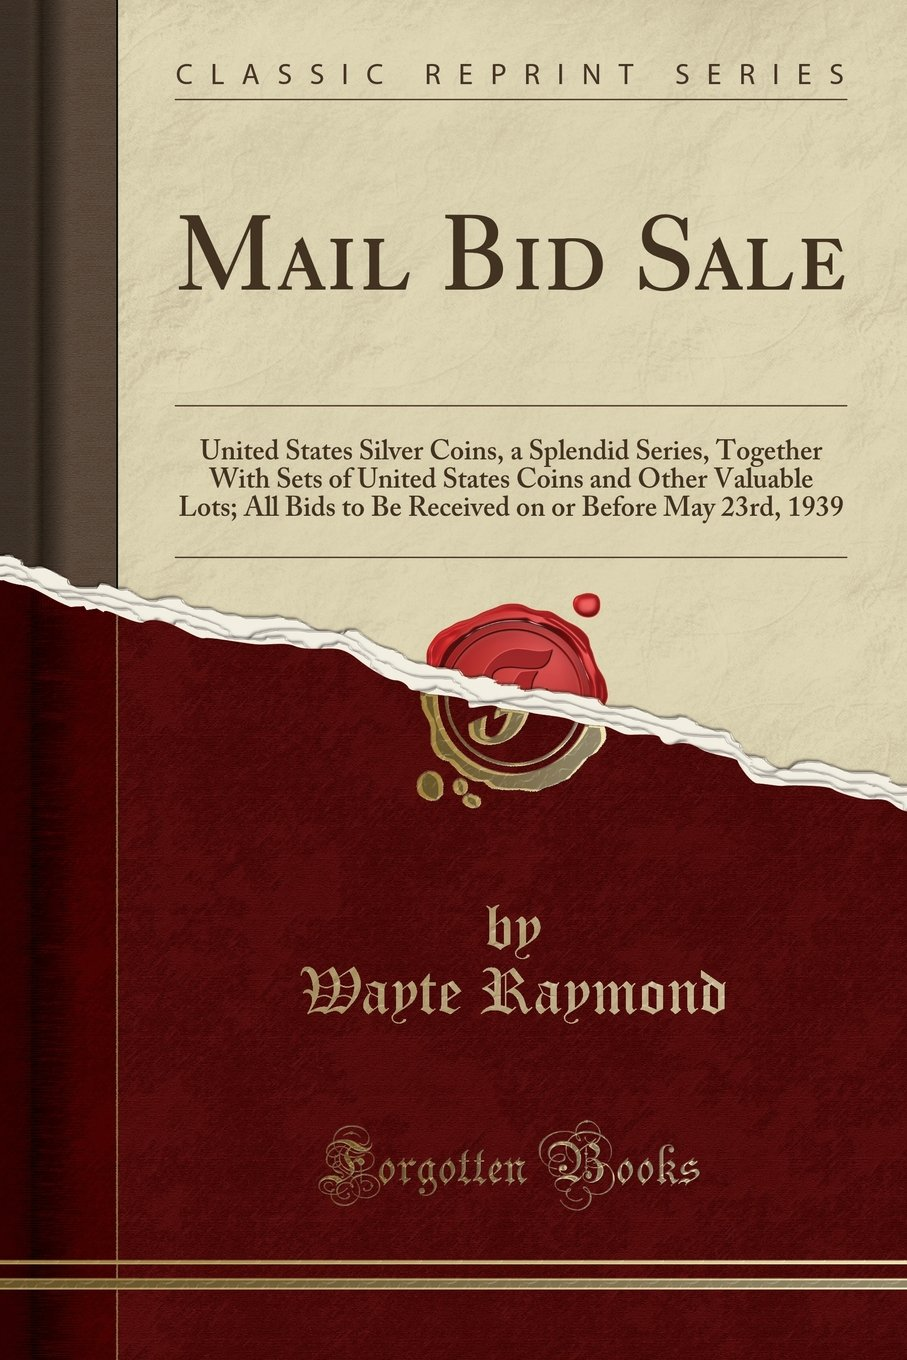 Download Mail Bid Sale: United States Silver Coins, a Splendid Series, Together With Sets of United States Coins and Other Valuable Lots; All Bids to Be Received on or Before May 23rd, 1939 (Classic Reprint) PDF